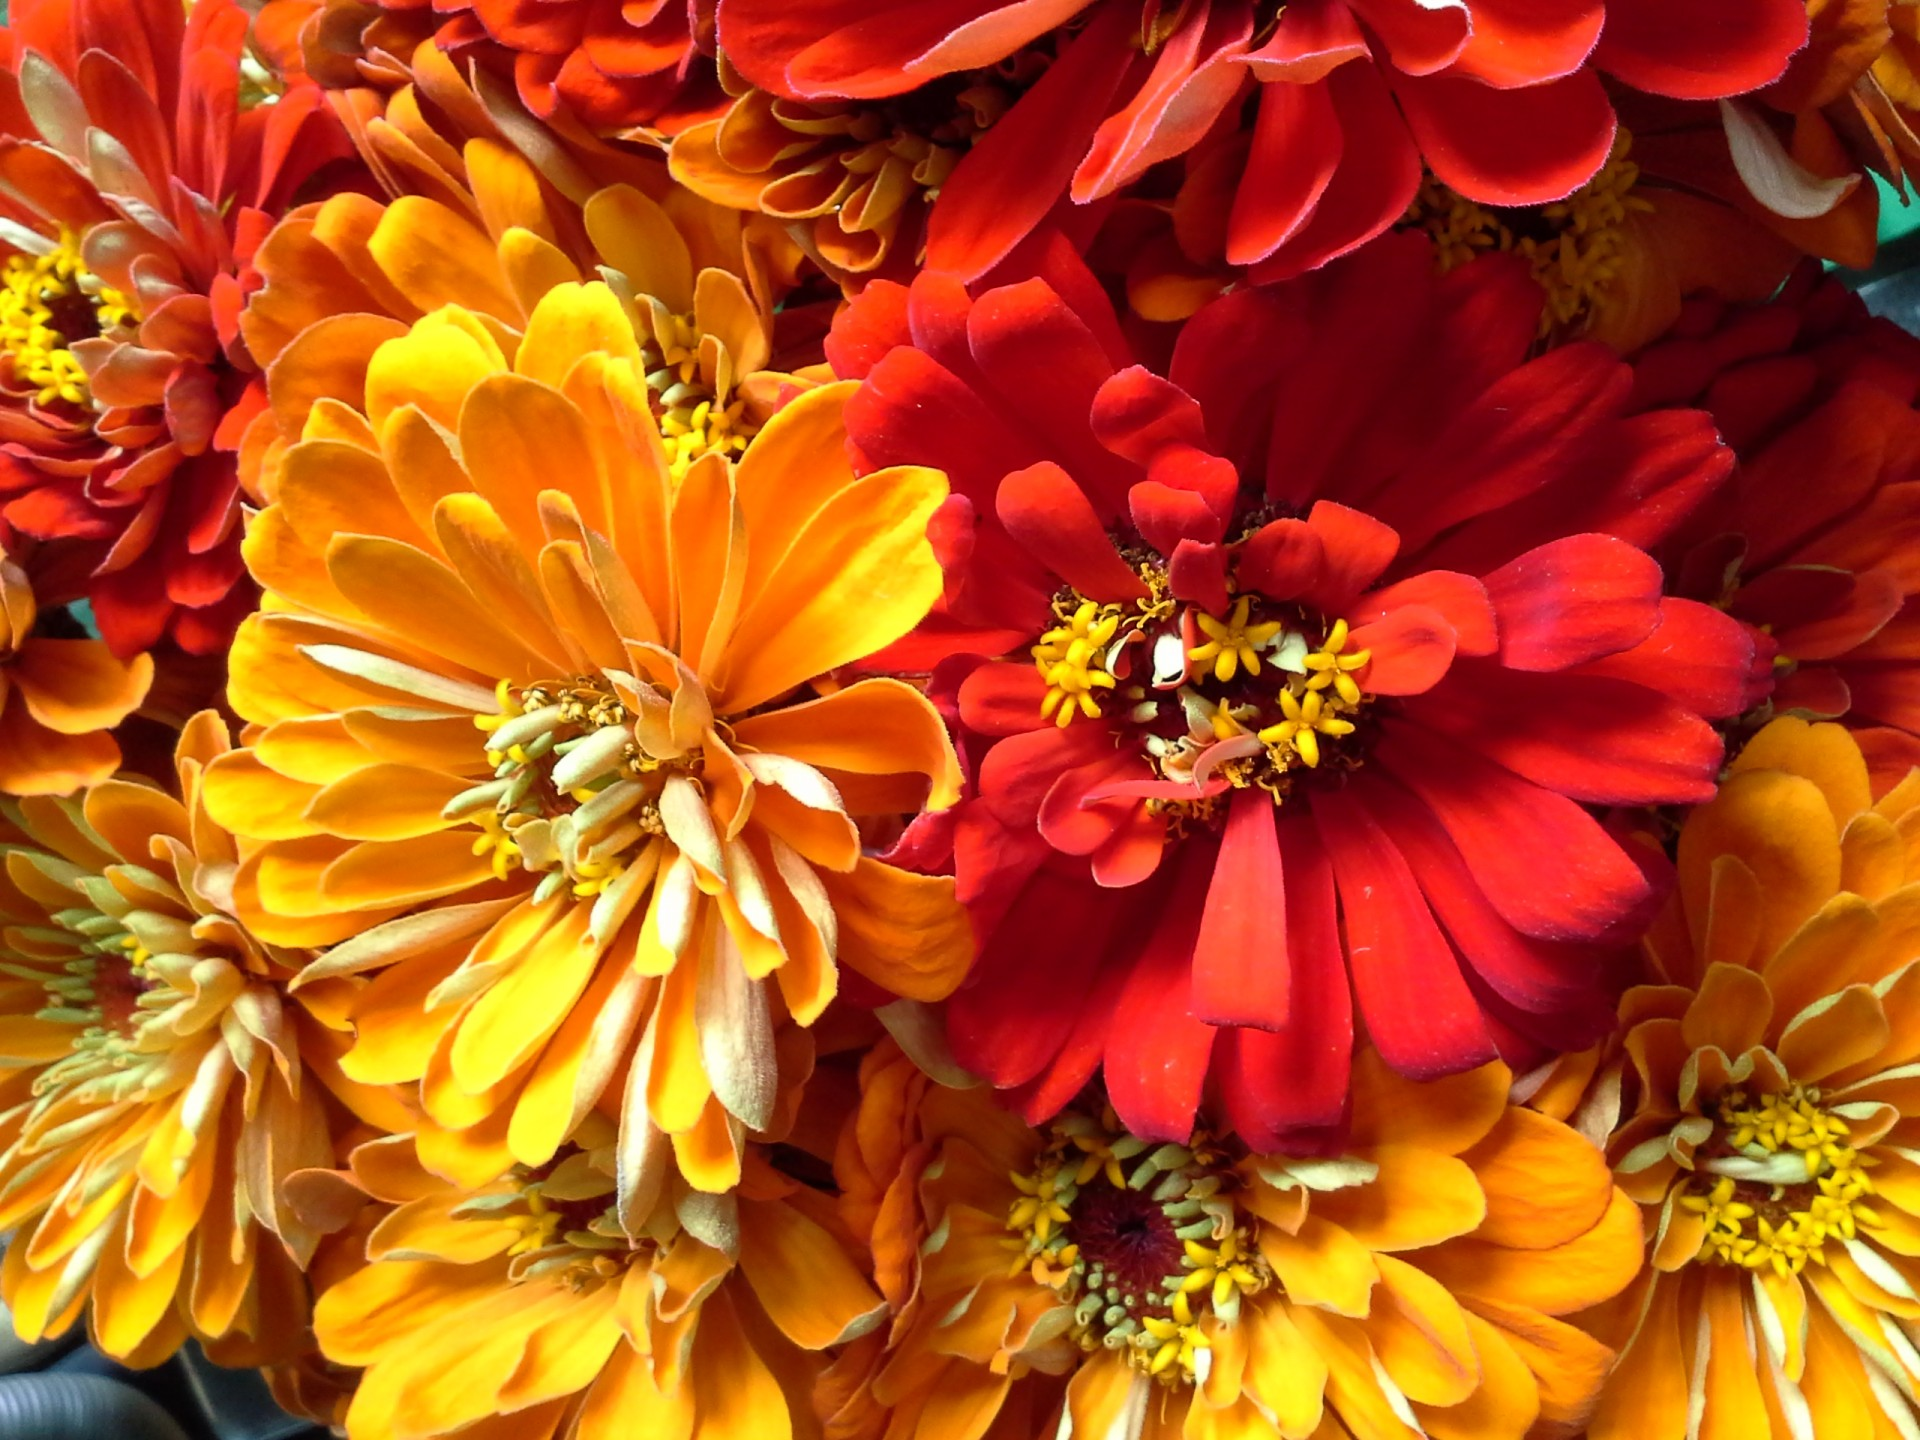 Flowers Background Summer Fall Orange Free Image From Needpix Com